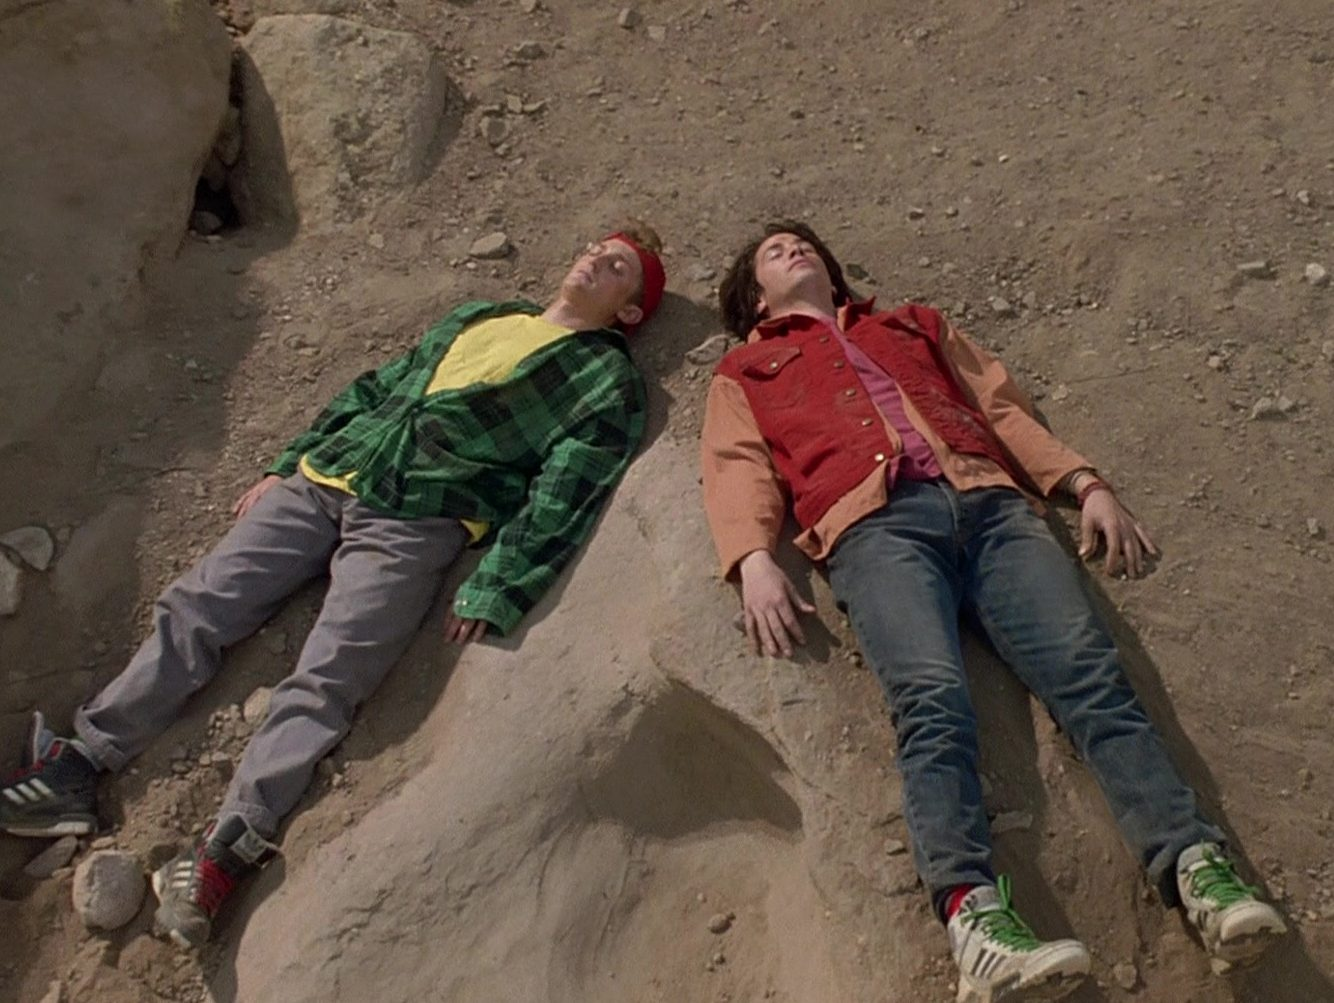 Adidas Sneakers Worn by Keanu Reeves Alex Winter in Bill Teds Bogus Journey 6 e1616682265304 30 Most Triumphant Truths About Bill & Ted's Bogus Journey